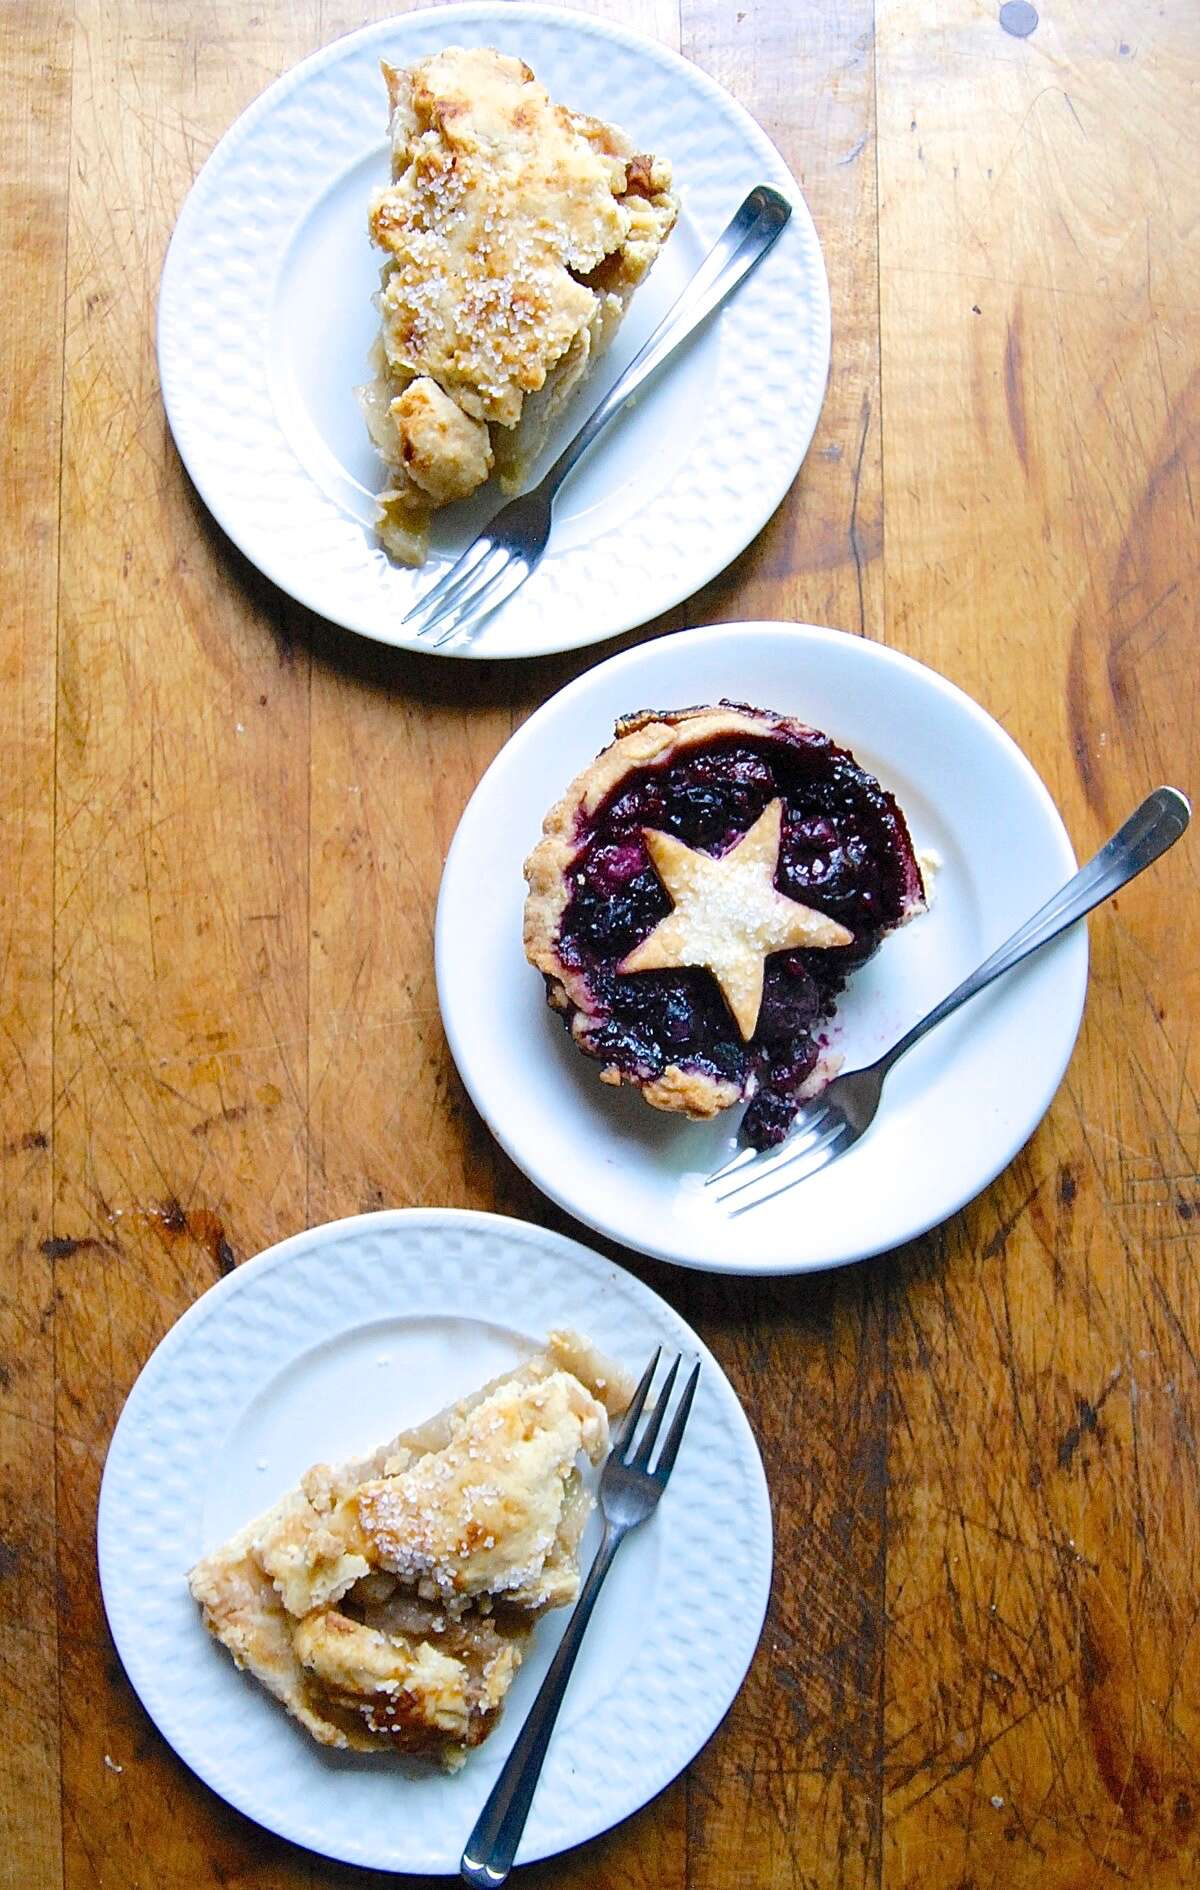 How to Reduce Sugar in Pie via @kingarthurflour